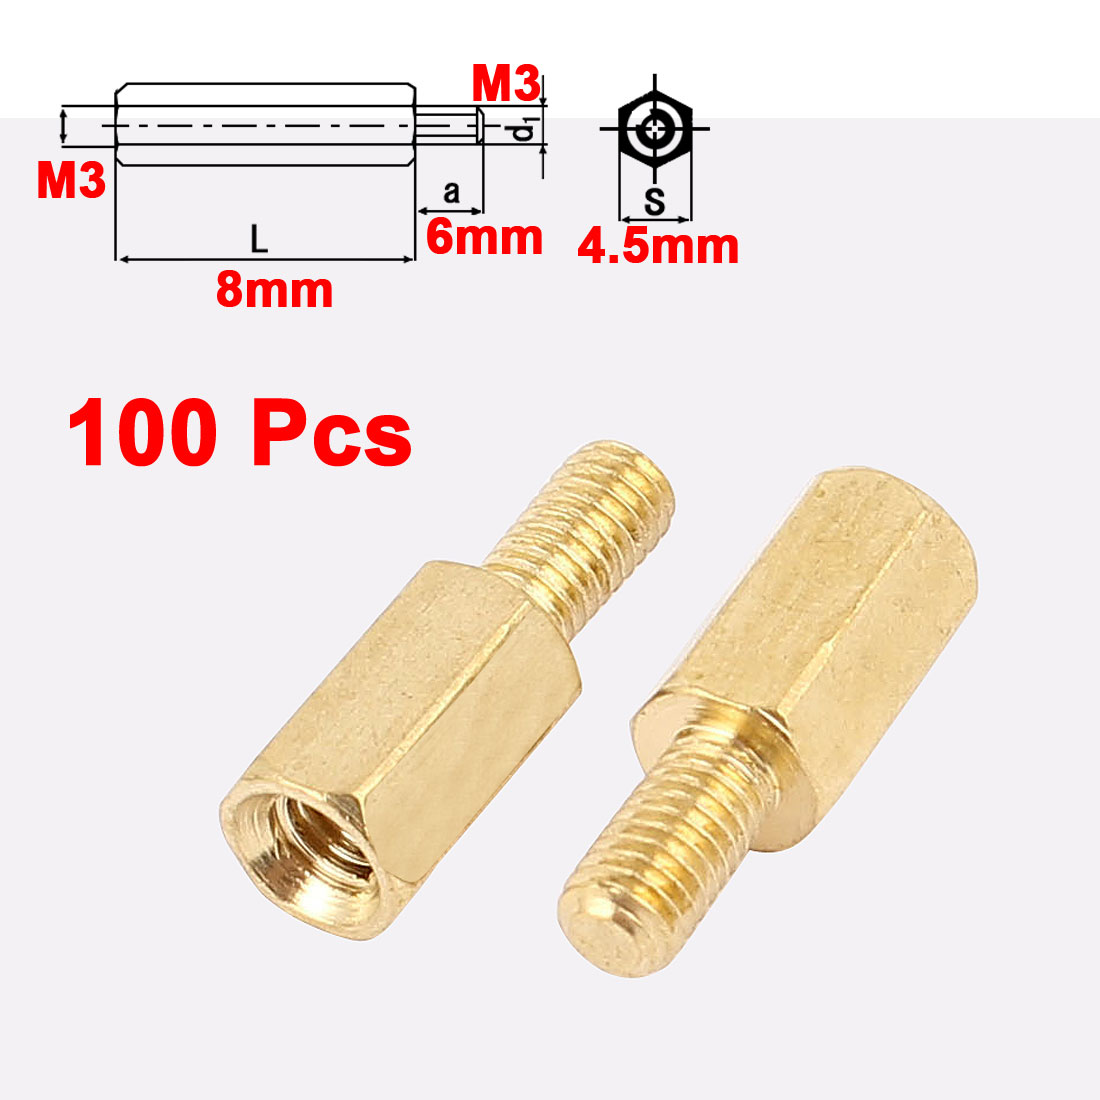 100Pcs M3 Male to Female 8mm+6mm Screw Threaded Brass Hex Standoff Spacer for PCB Motherboard